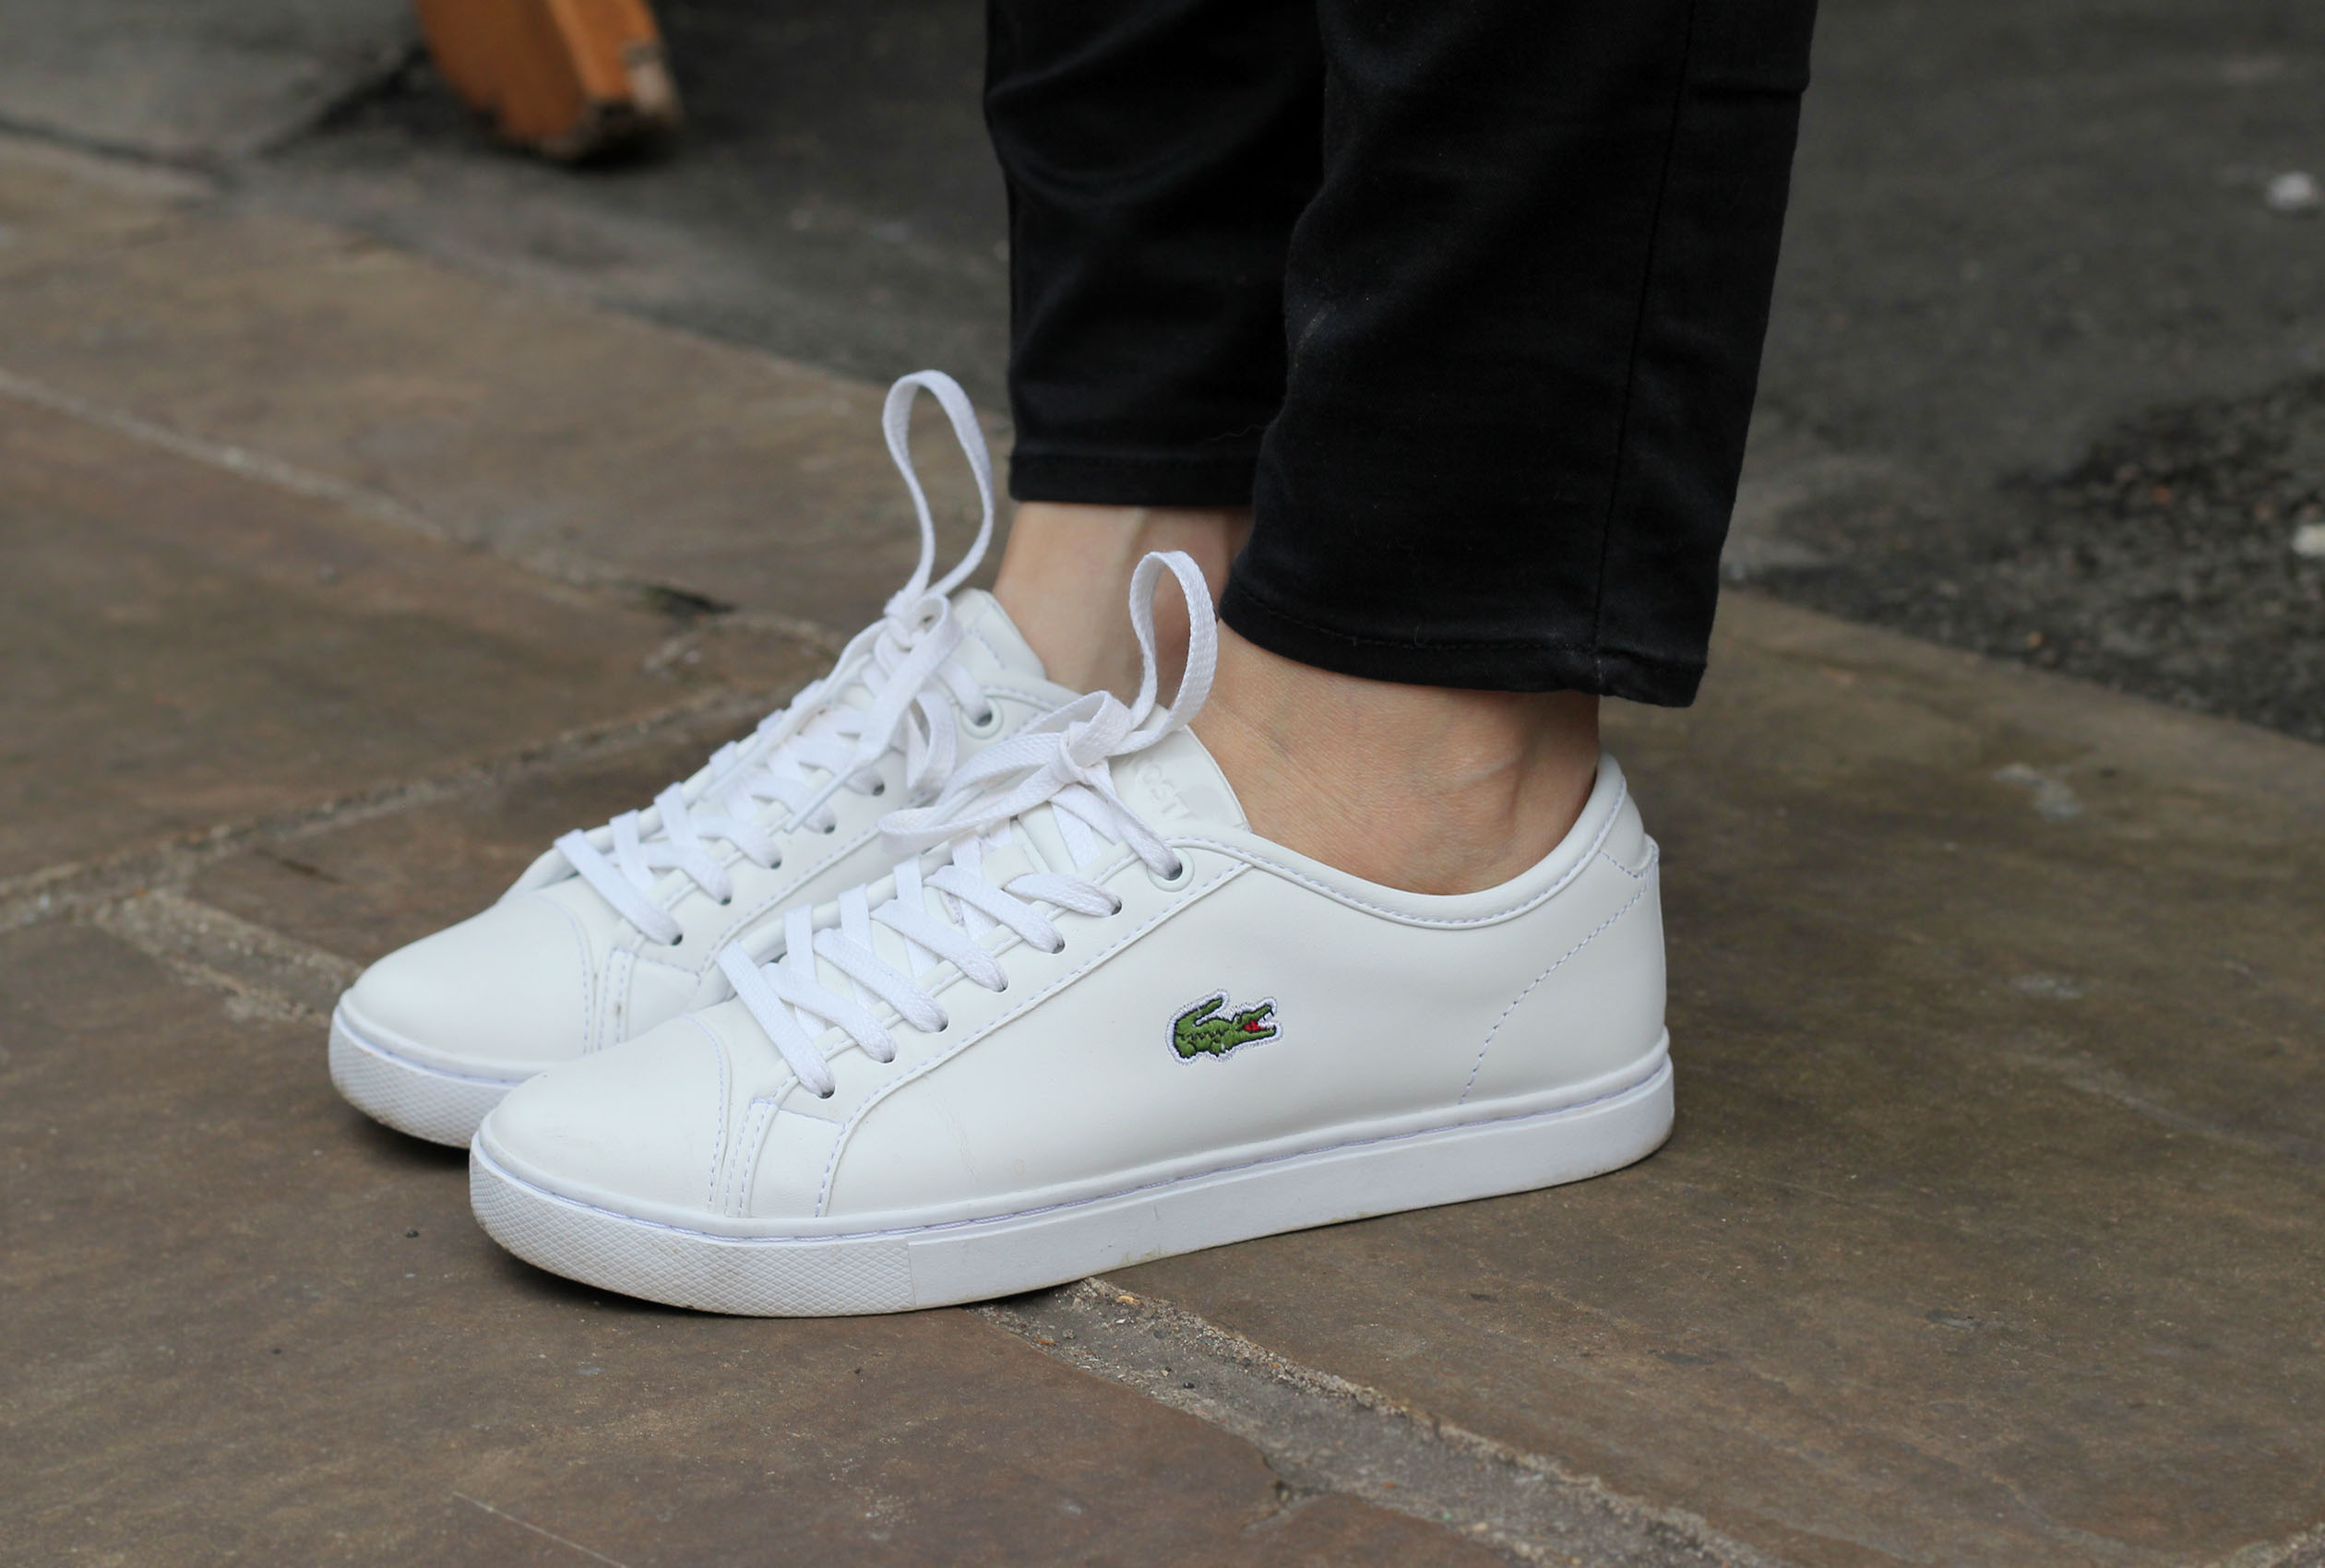 10 Best Lacoste Shoes Reviewed & Rated in 2019 | WalkJogRun